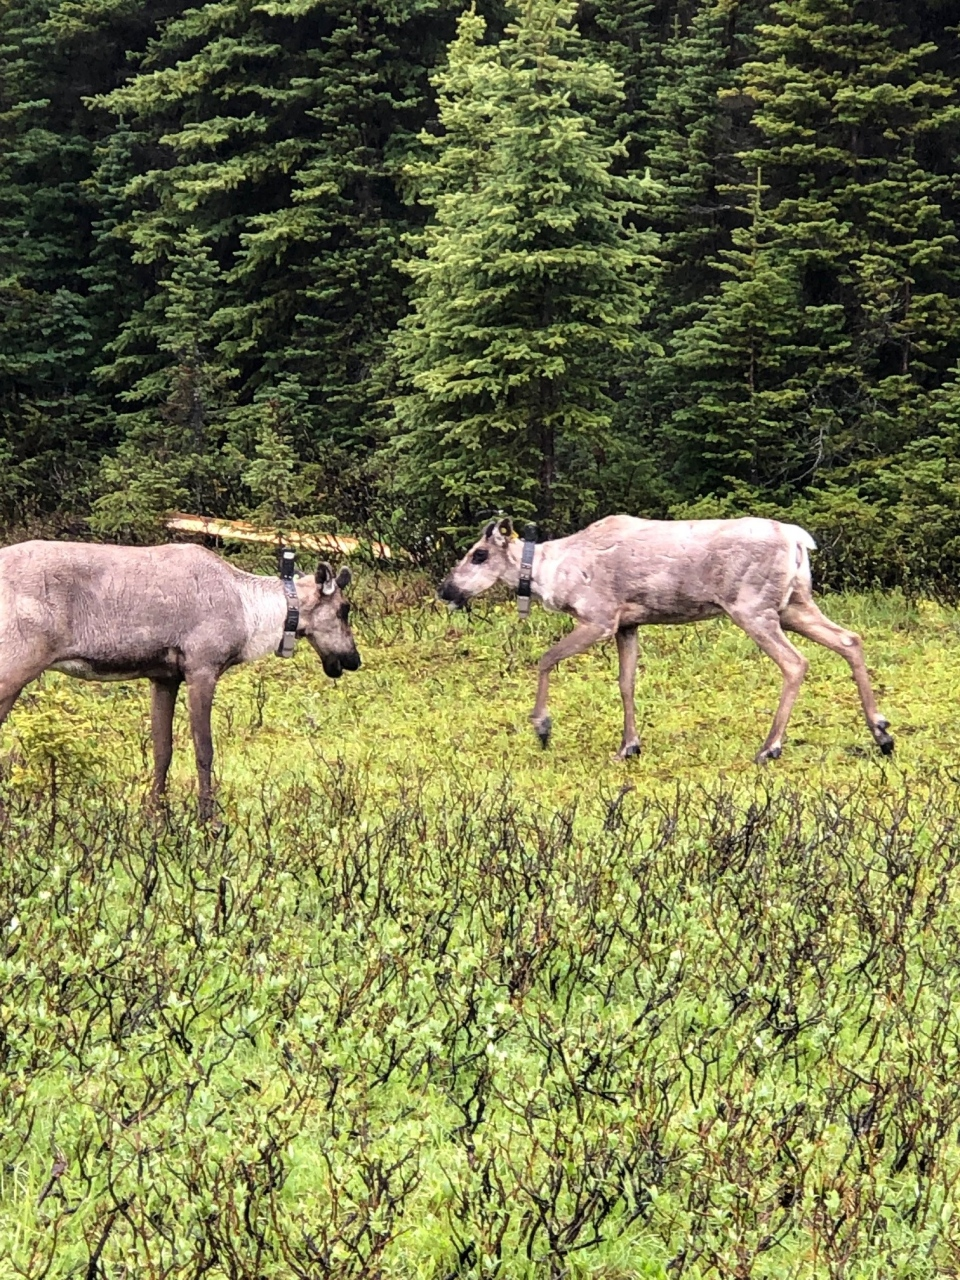 Two caribou can be seen at a sanctuary in the South Peace River region of B.C designed to protect the animals from predators.